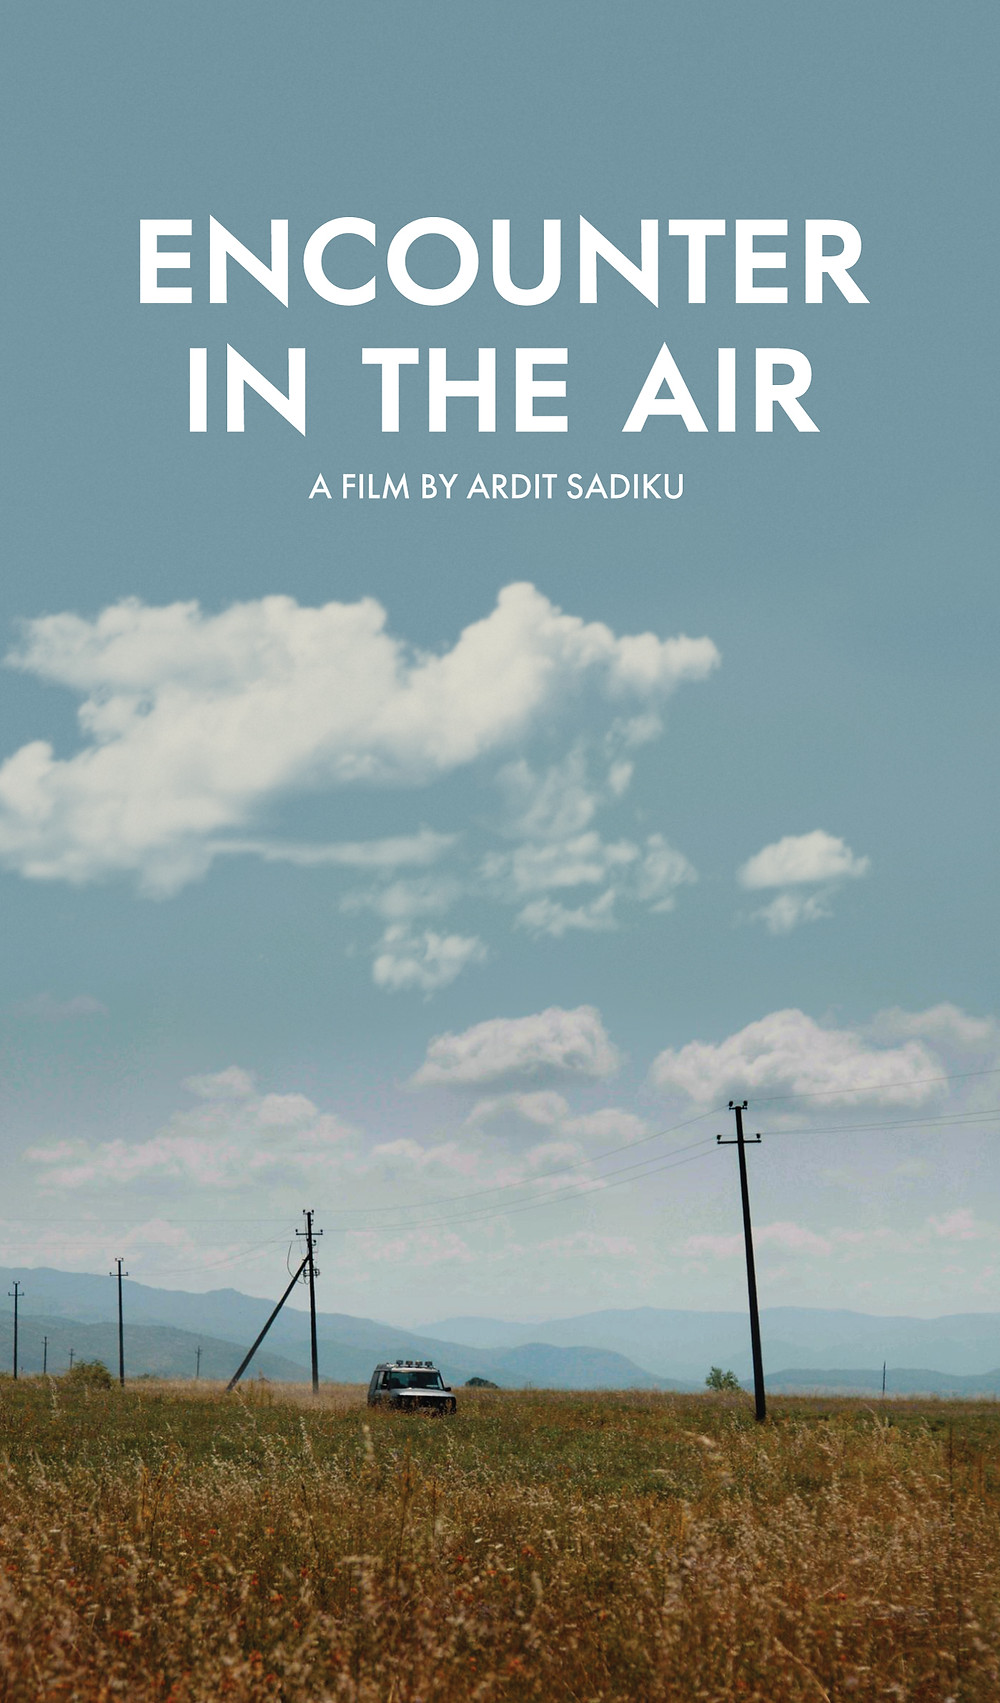 Poster for Encounter in the Air showing field and sky.